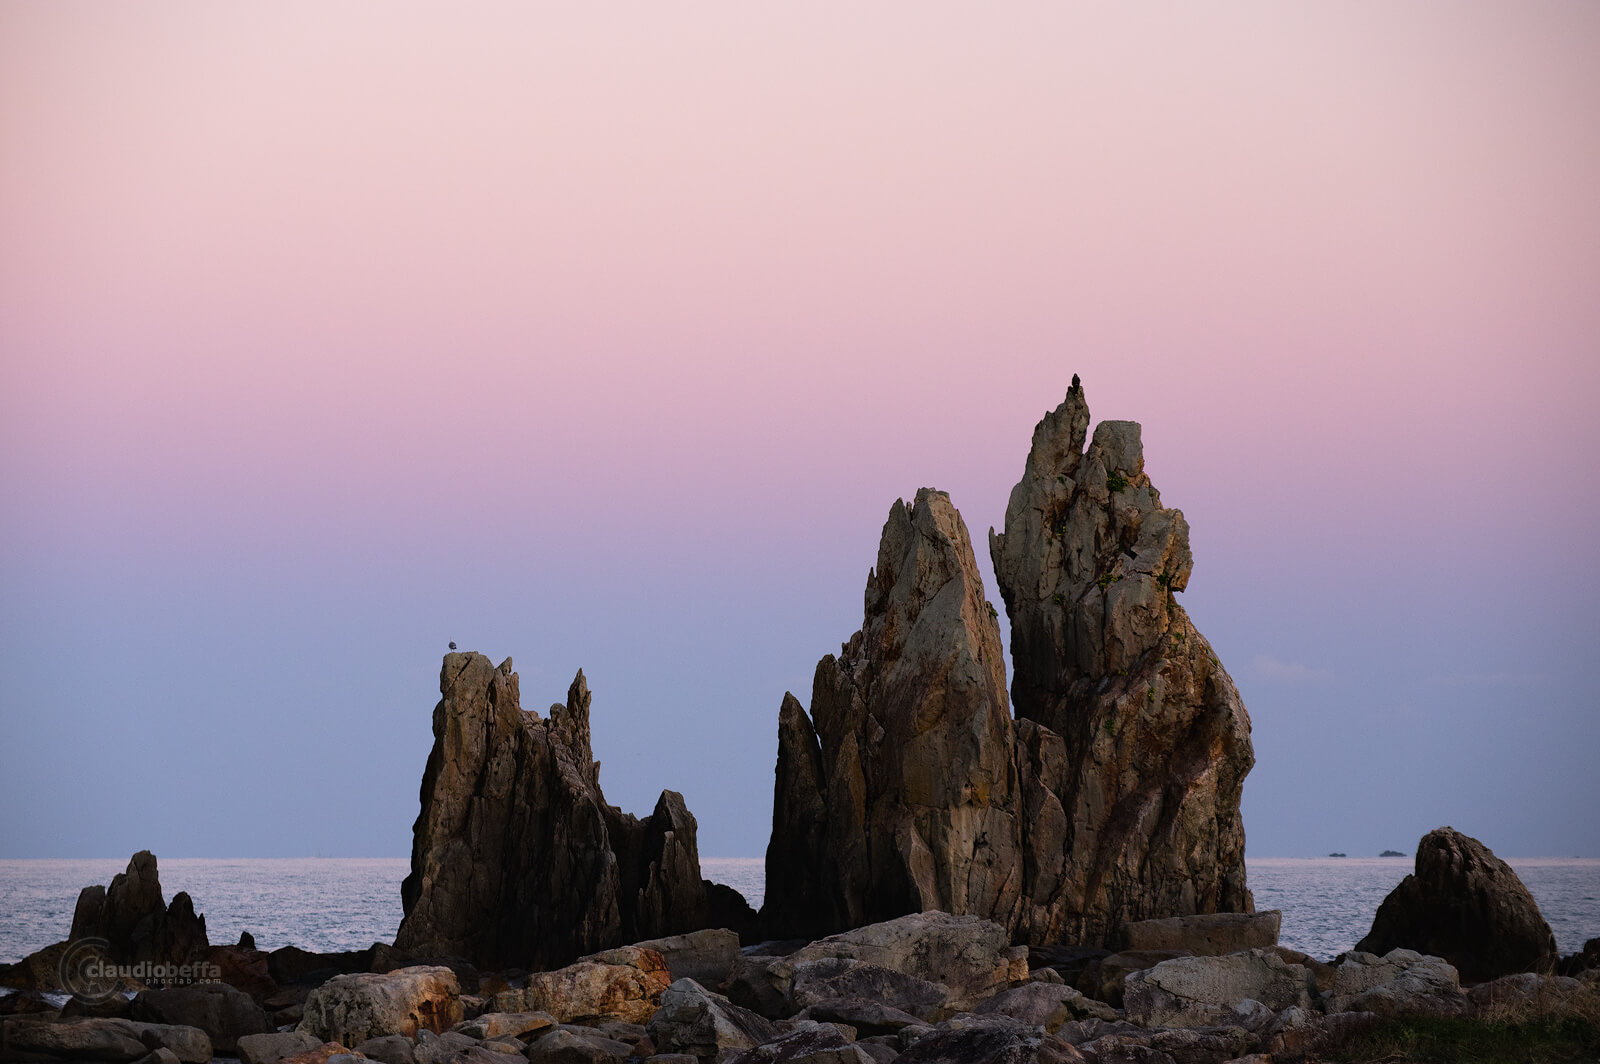 Hashigui Iwa, Hashigui rocks, seascape, landscape, twilight, sunset, Japan, Kii peninsula, Kii Oshima, Wakayama, Kushimoto, autumn, fall, island, travel, photography, phoclab